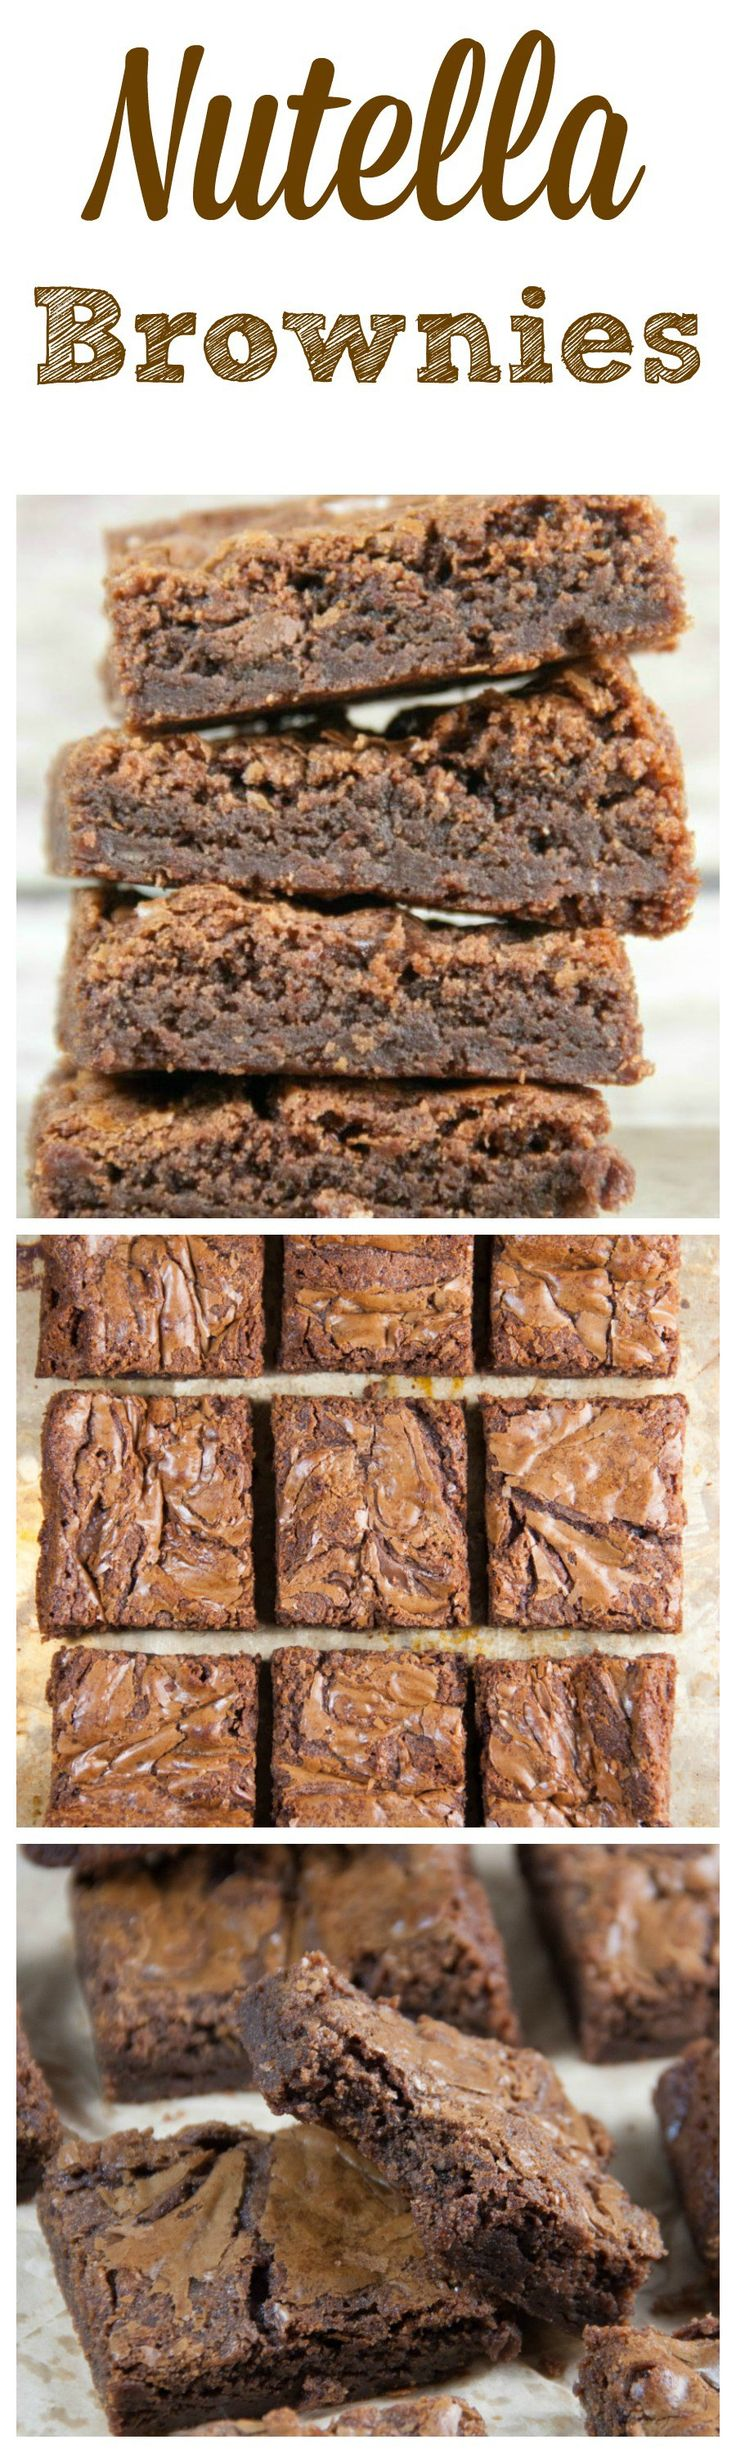 Nutella Brownies- an easy brownie recipe with Nutella! Fudgy and delicious you have to try!